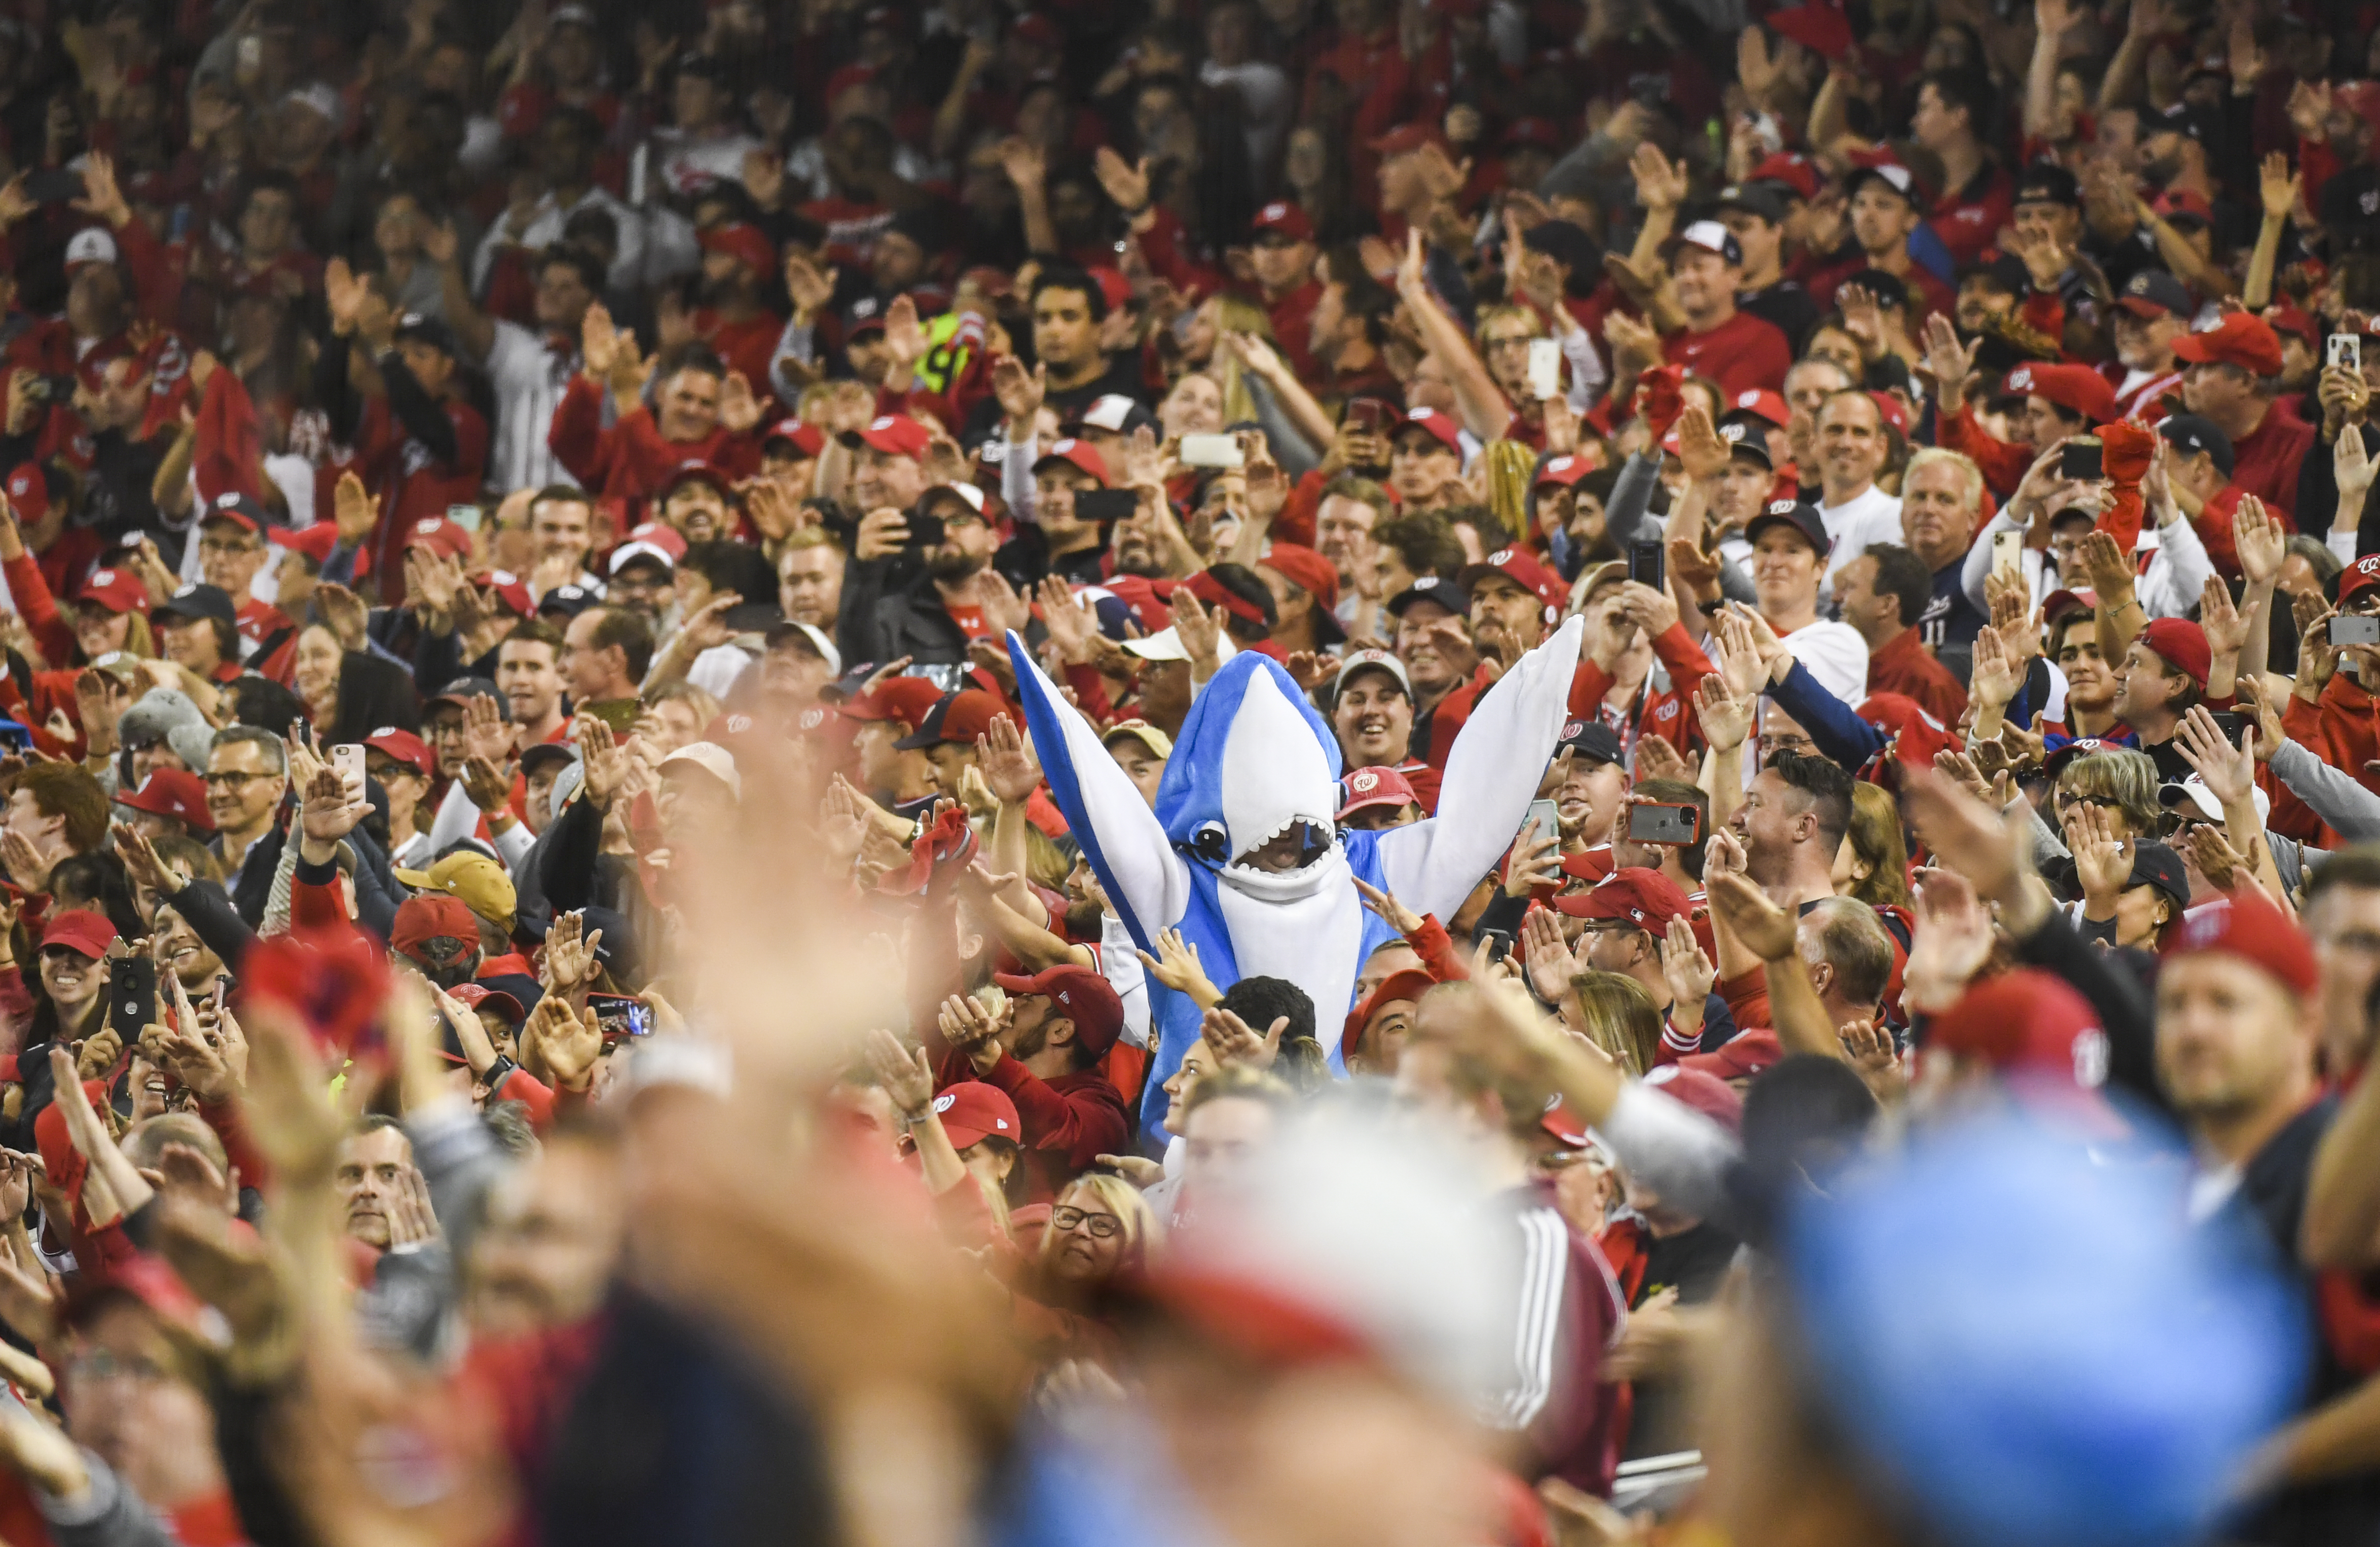 MLB-Game Four of the NLCS between the Washington Nationals and St. Louis Cardinals